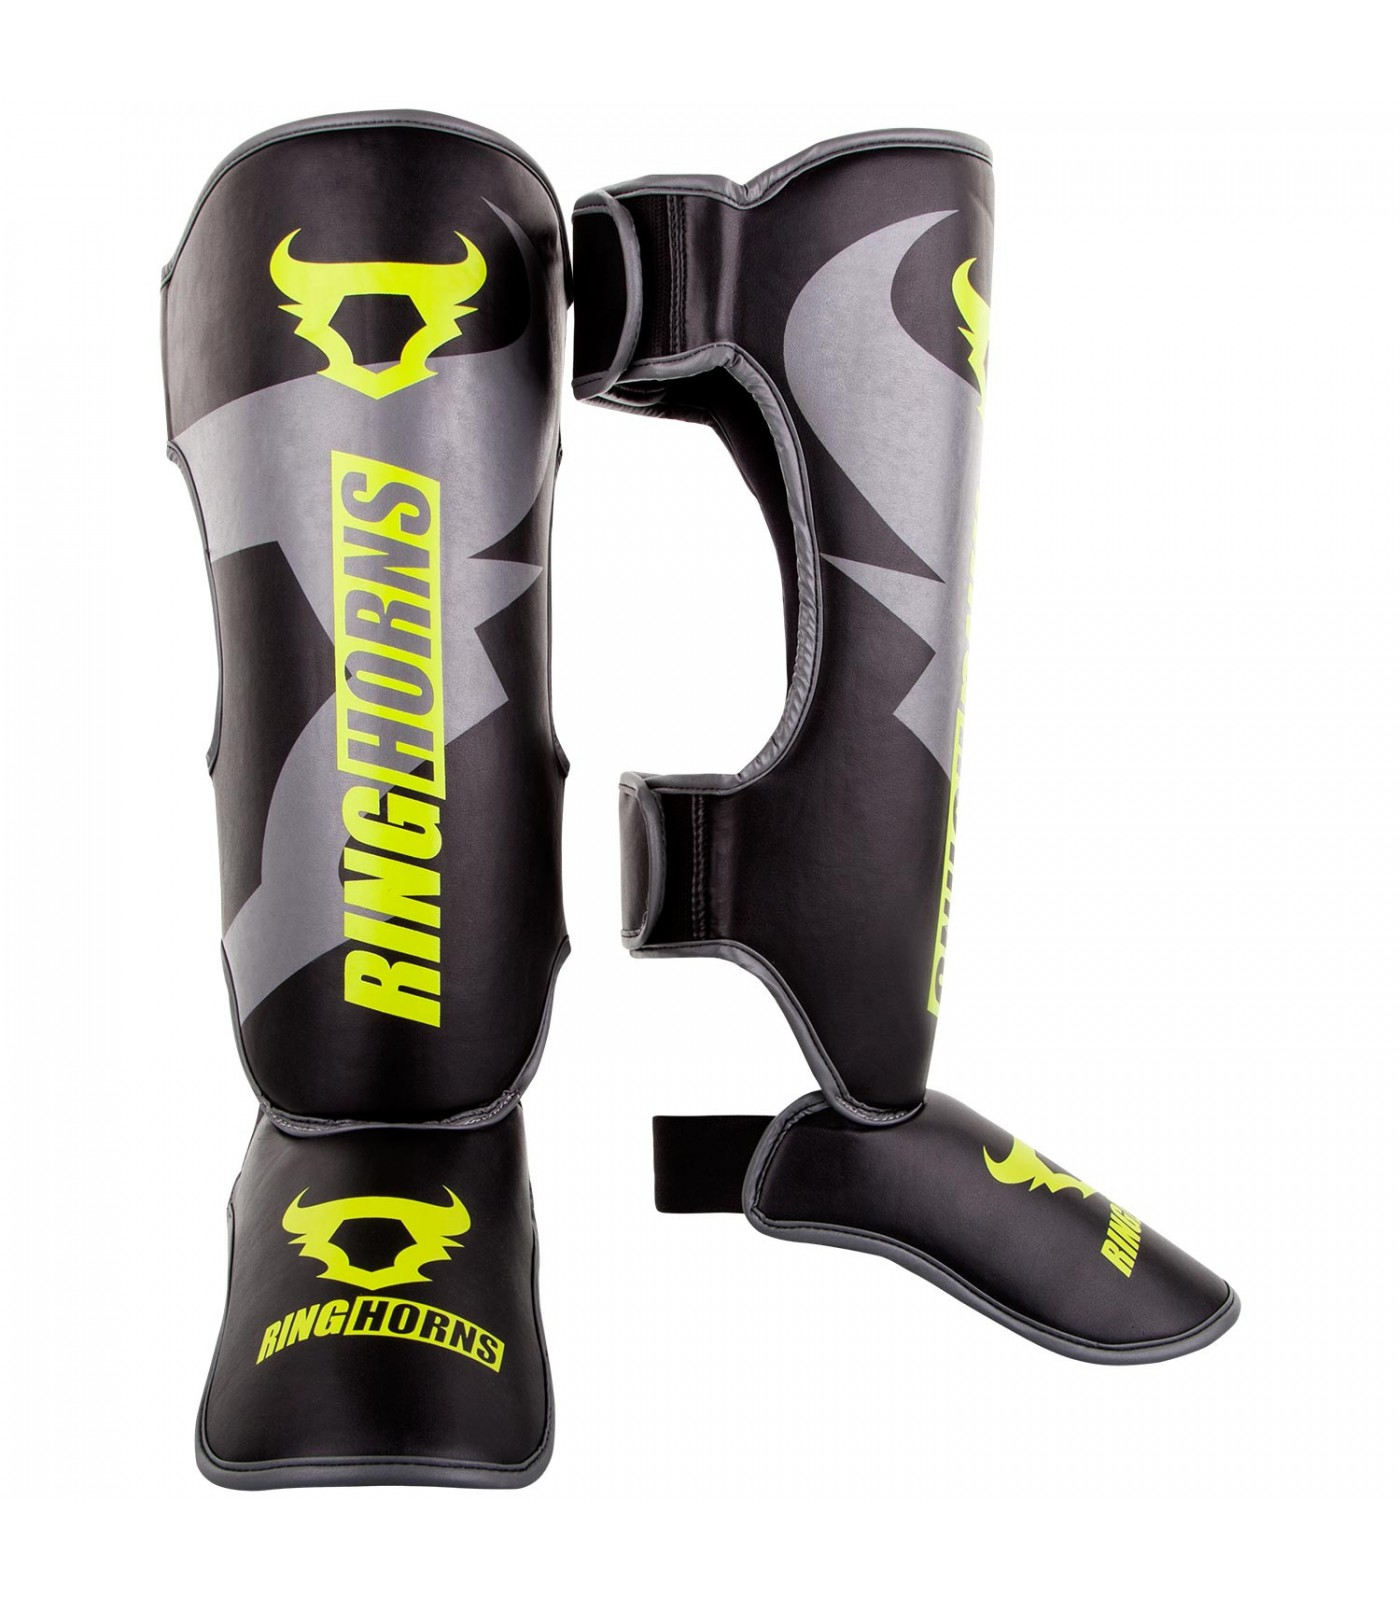 Протектори за крака - Ringhorns Charger Shinguards Insteps - Black/Neo Yellow​